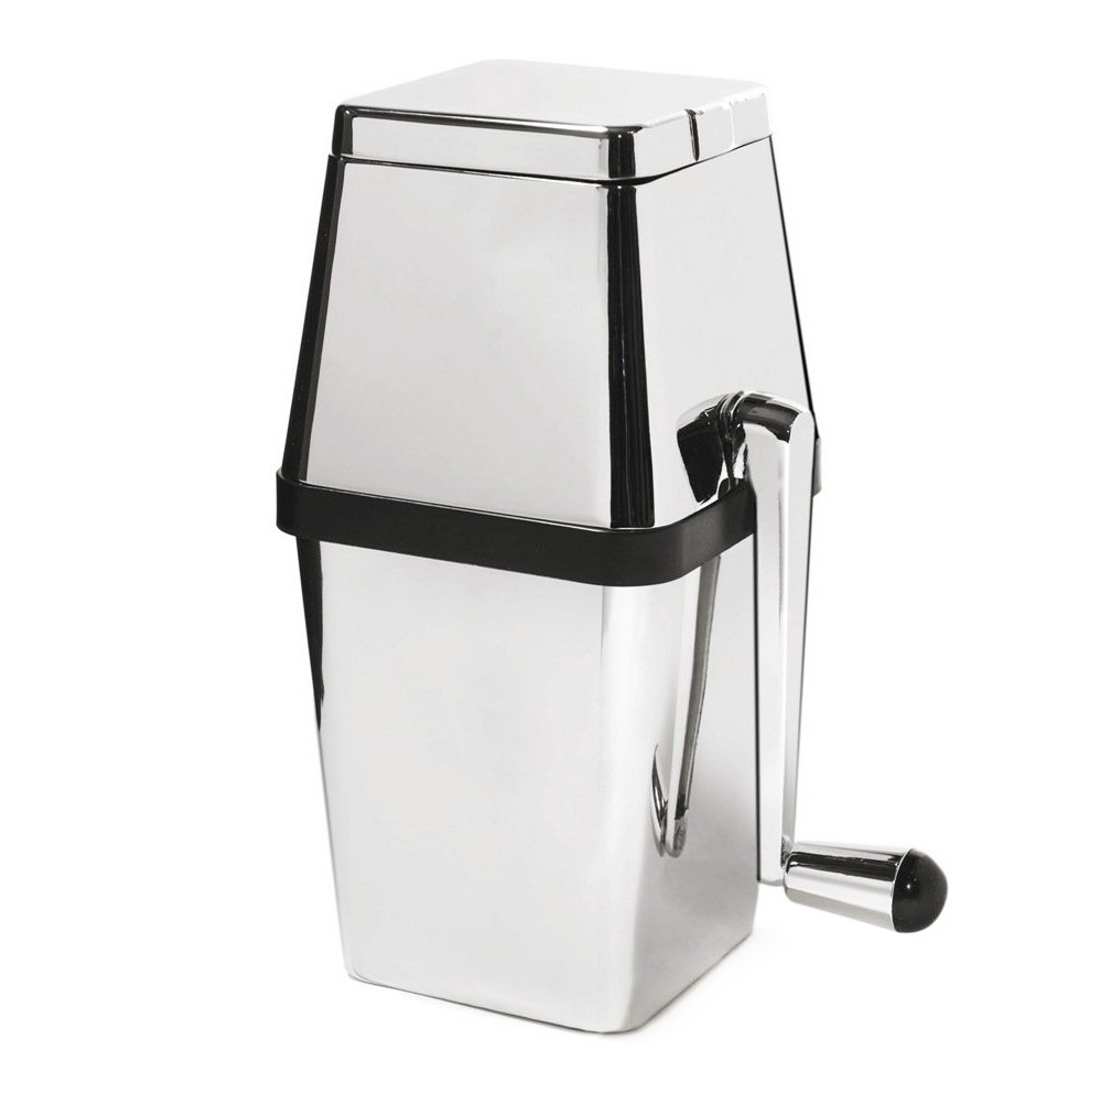 Rabbit Stainless Steel Retro Ice Crusher With Chrome Top